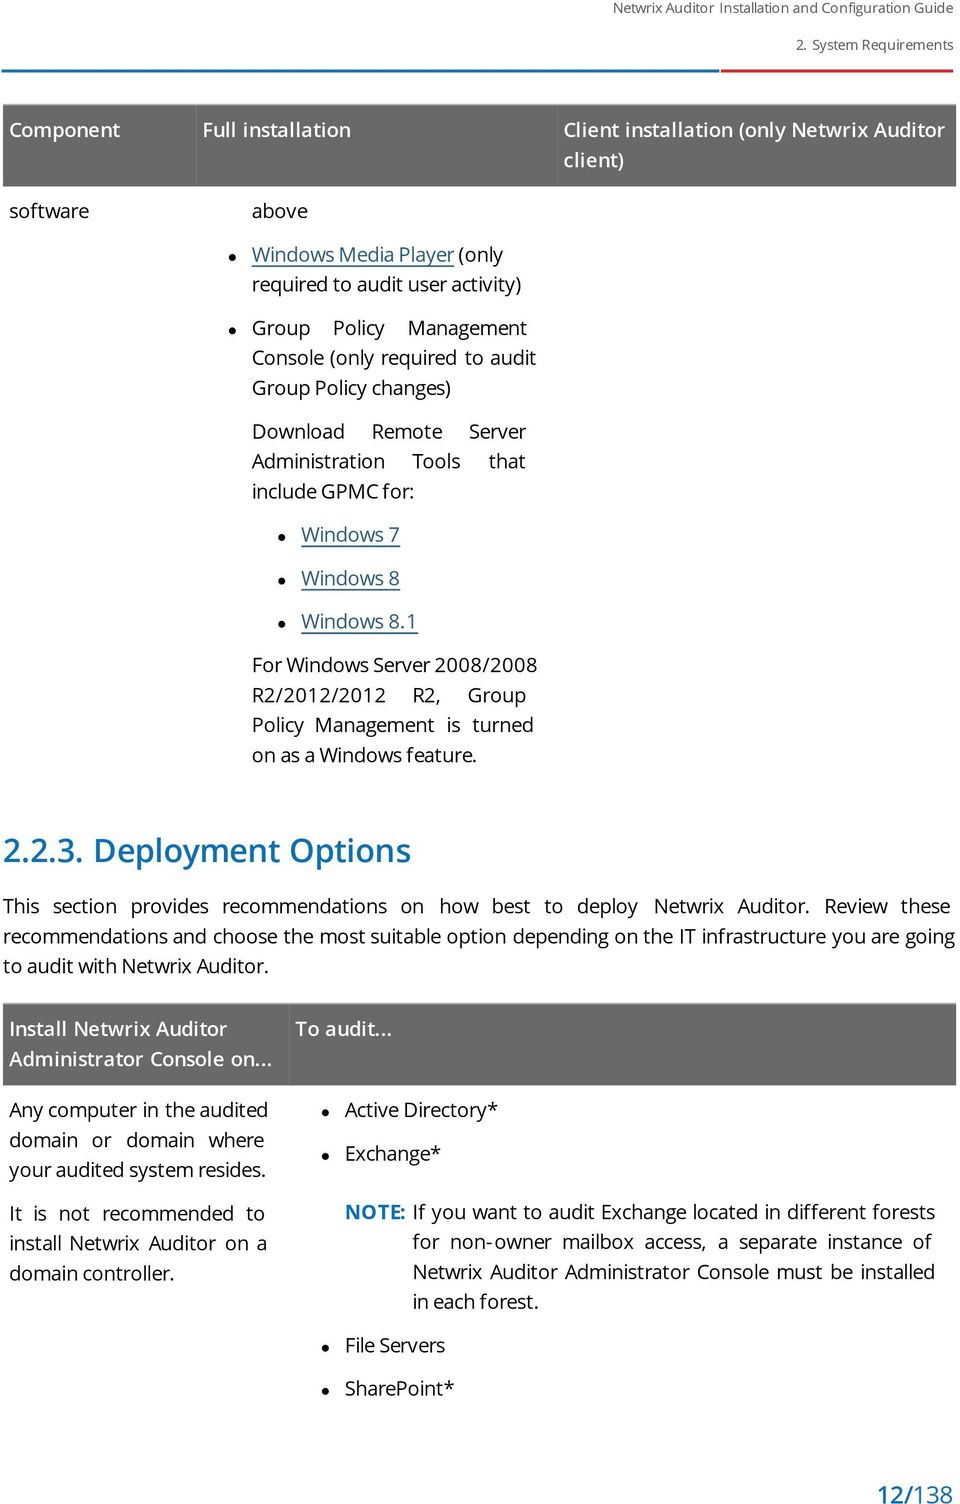 1 For Windows Server 2008/2008 R2/2012/2012 R2, Group Policy Management is turned on as a Windows feature. 2.2.3.